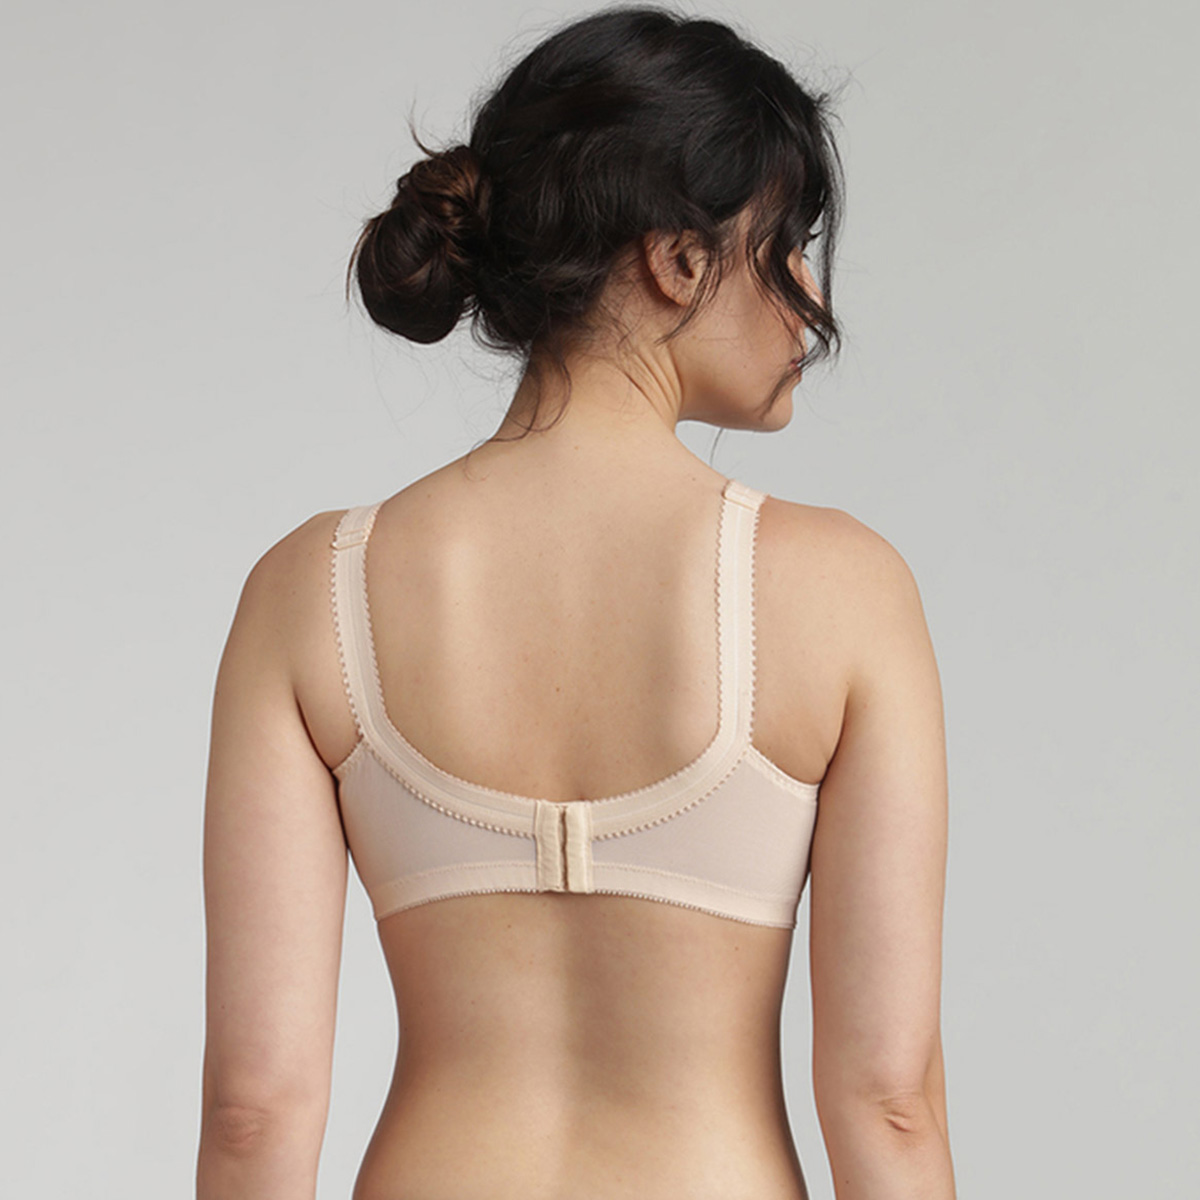 Non-wired bra in beige Cross Your Heart 556, , PLAYTEX